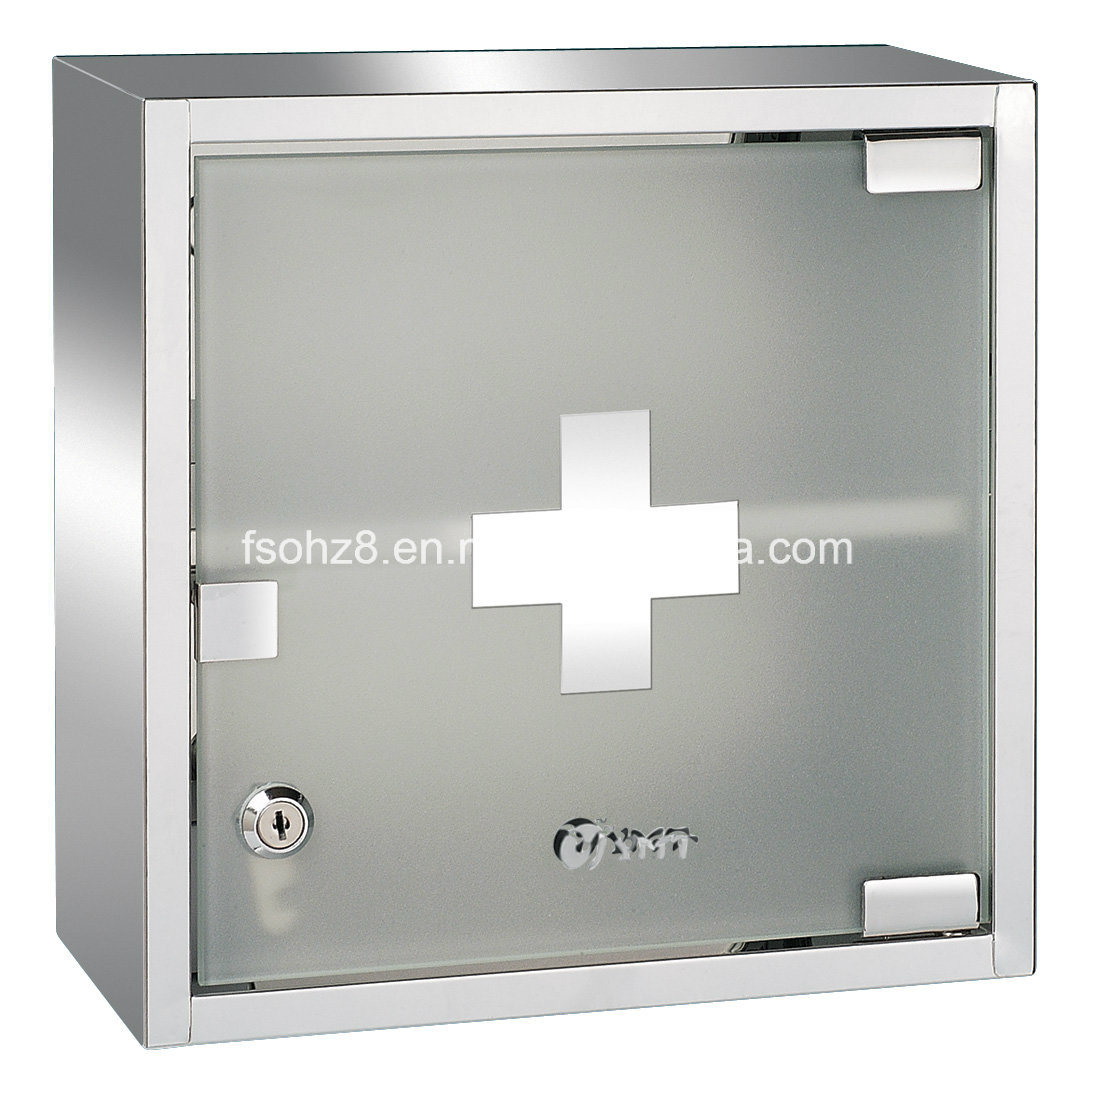 Stainless Steel Furniture Bathroom Medicine Cabinet with Mirror (7036)